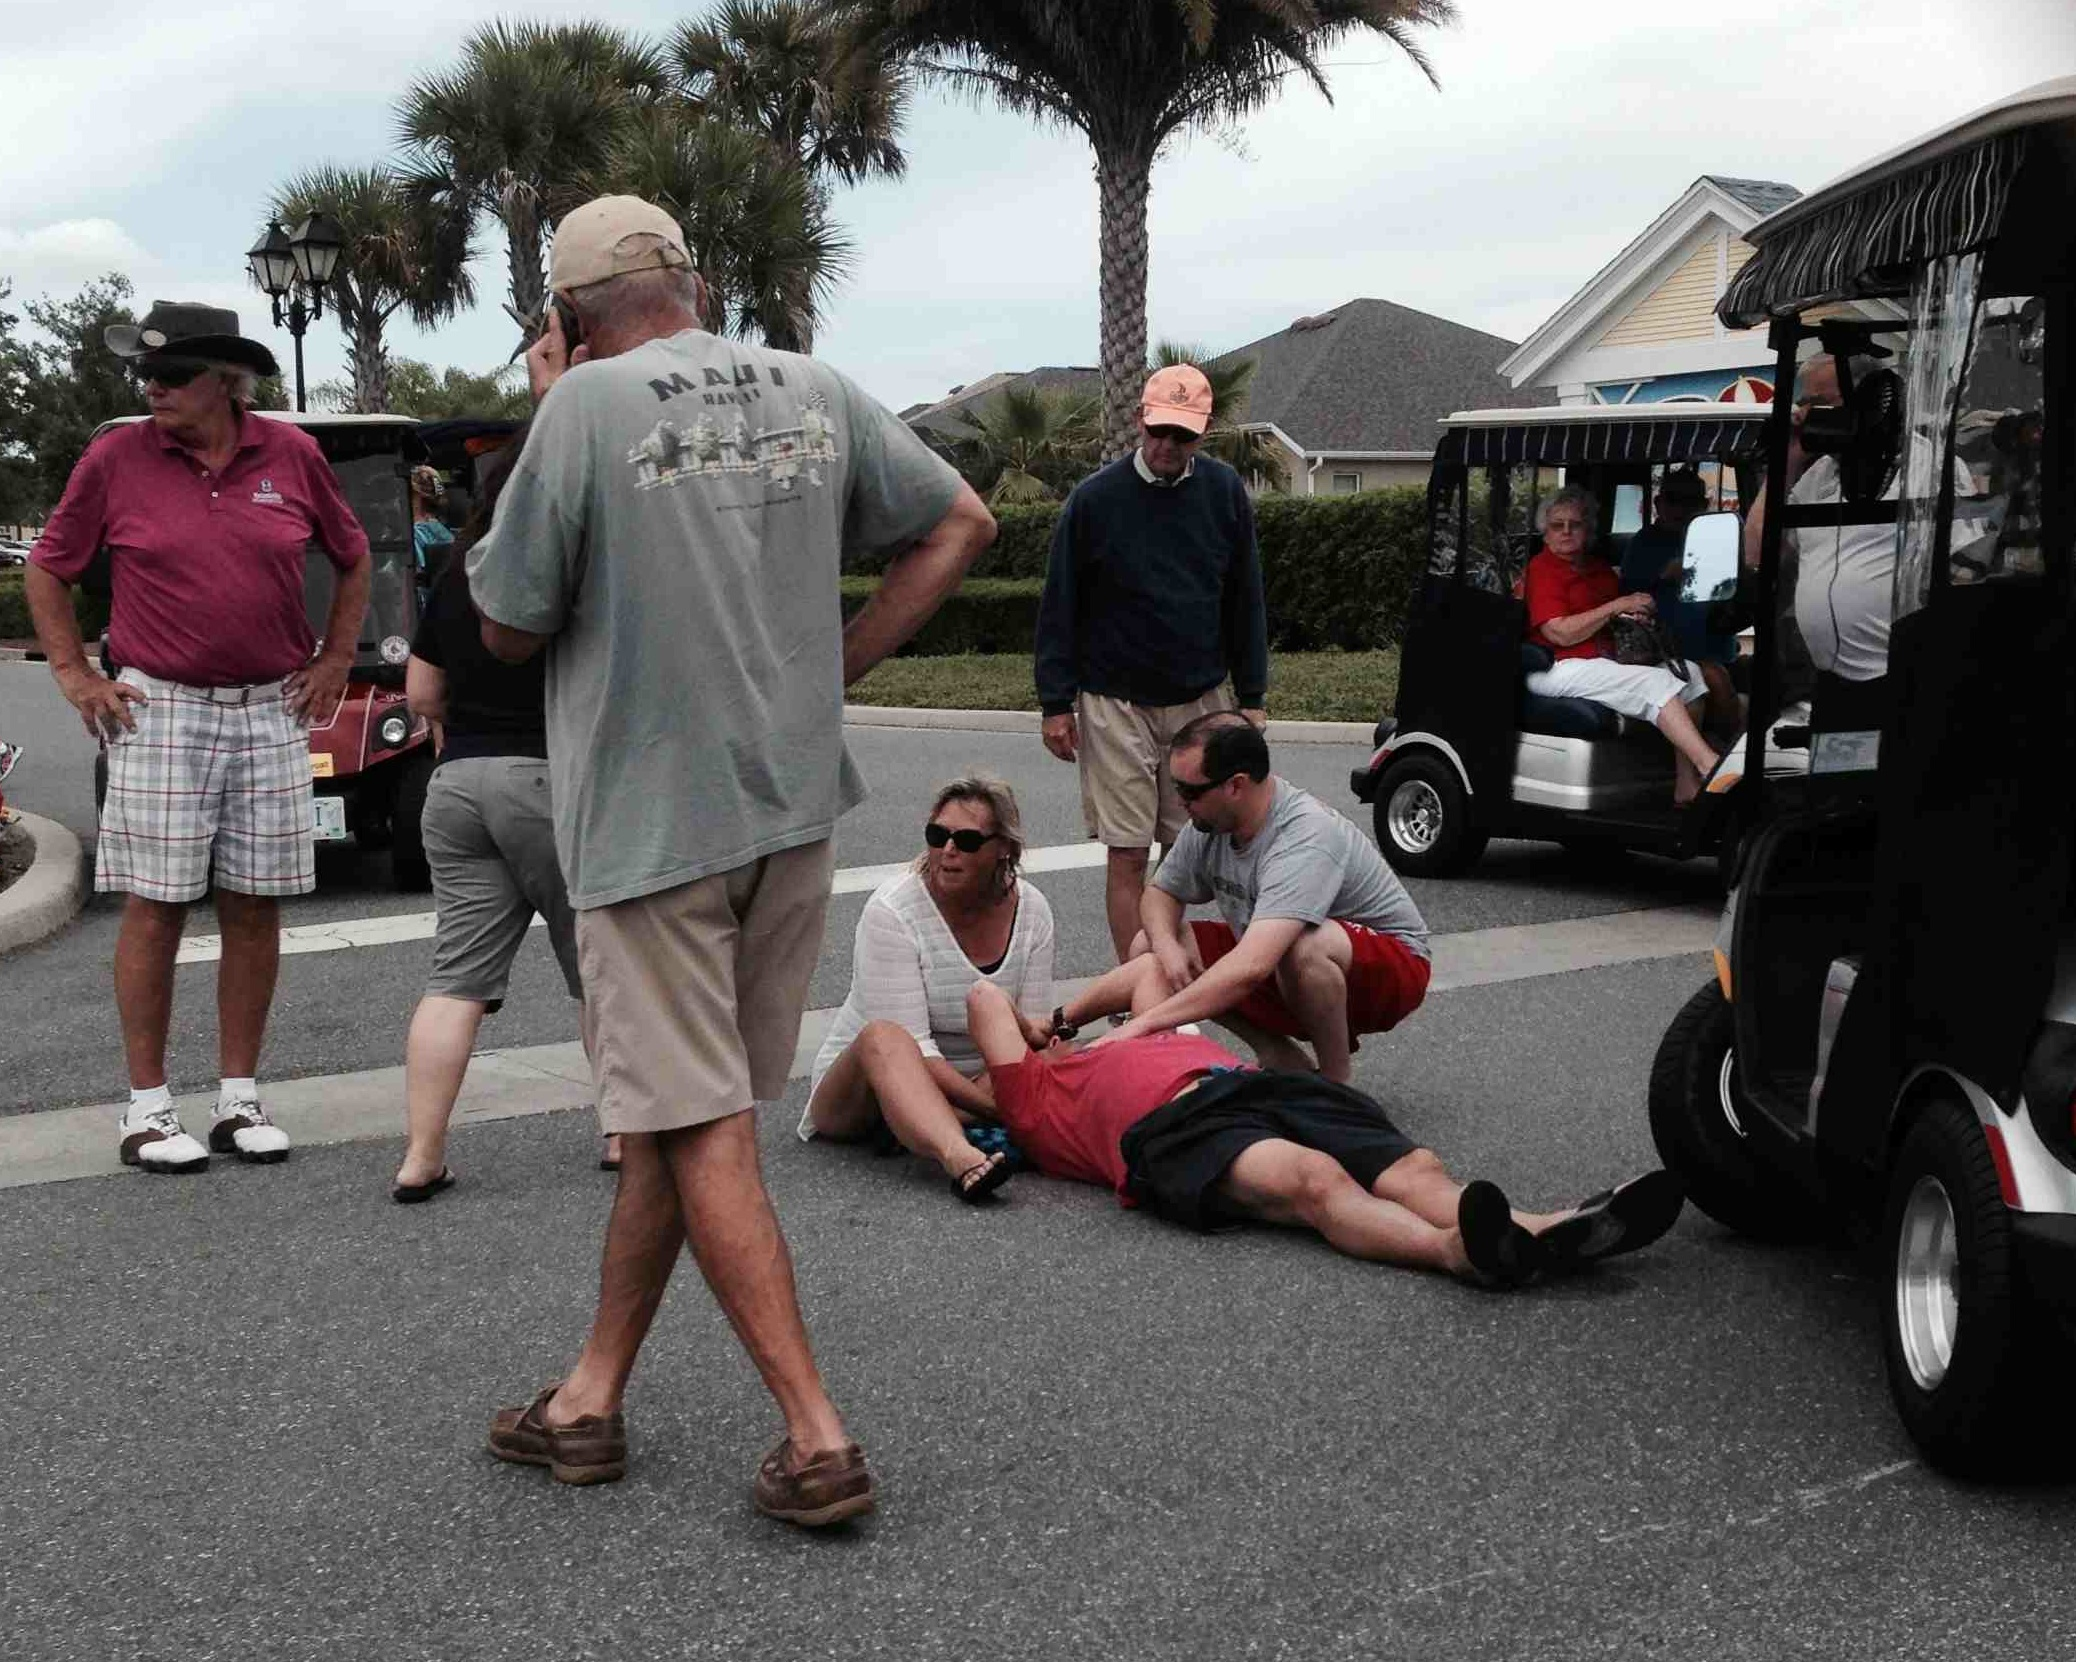 golf cart accidents pioneer deh 2450ub wiring diagram accident victim says traffic light needed on